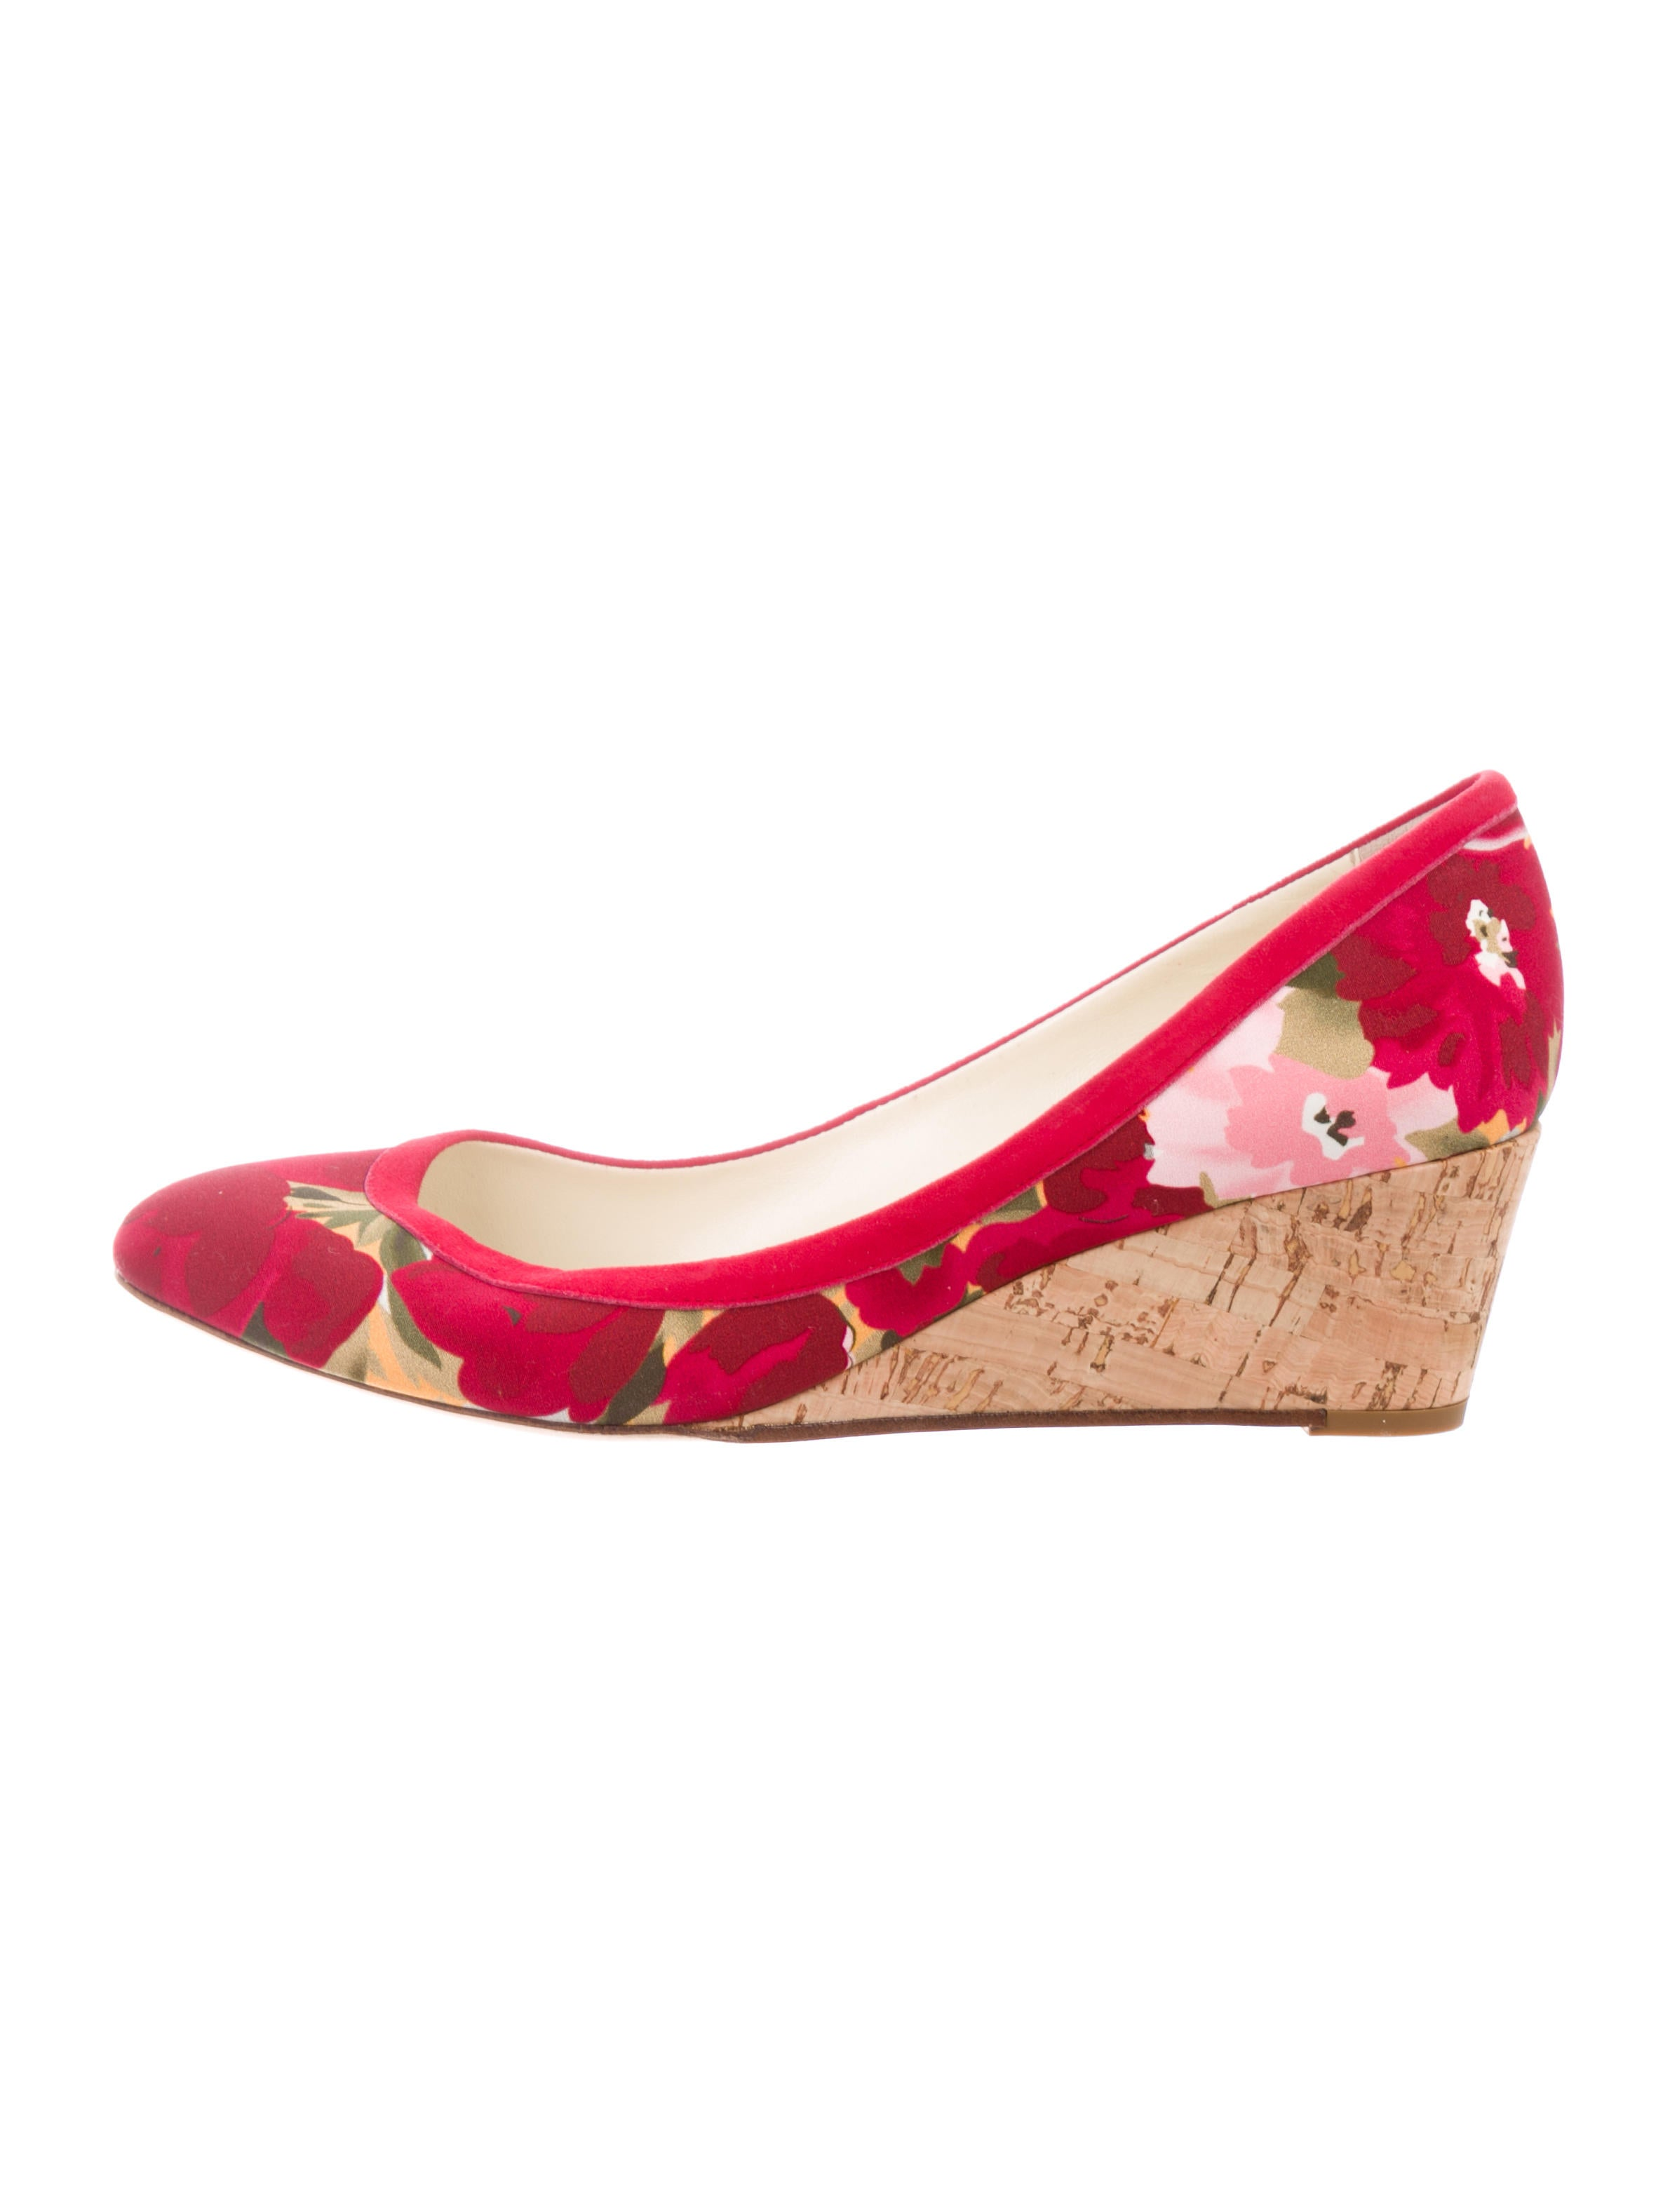 Bettye Muller Floral Print Wedges clearance geniue stockist big discount for sale s1Uf4h3